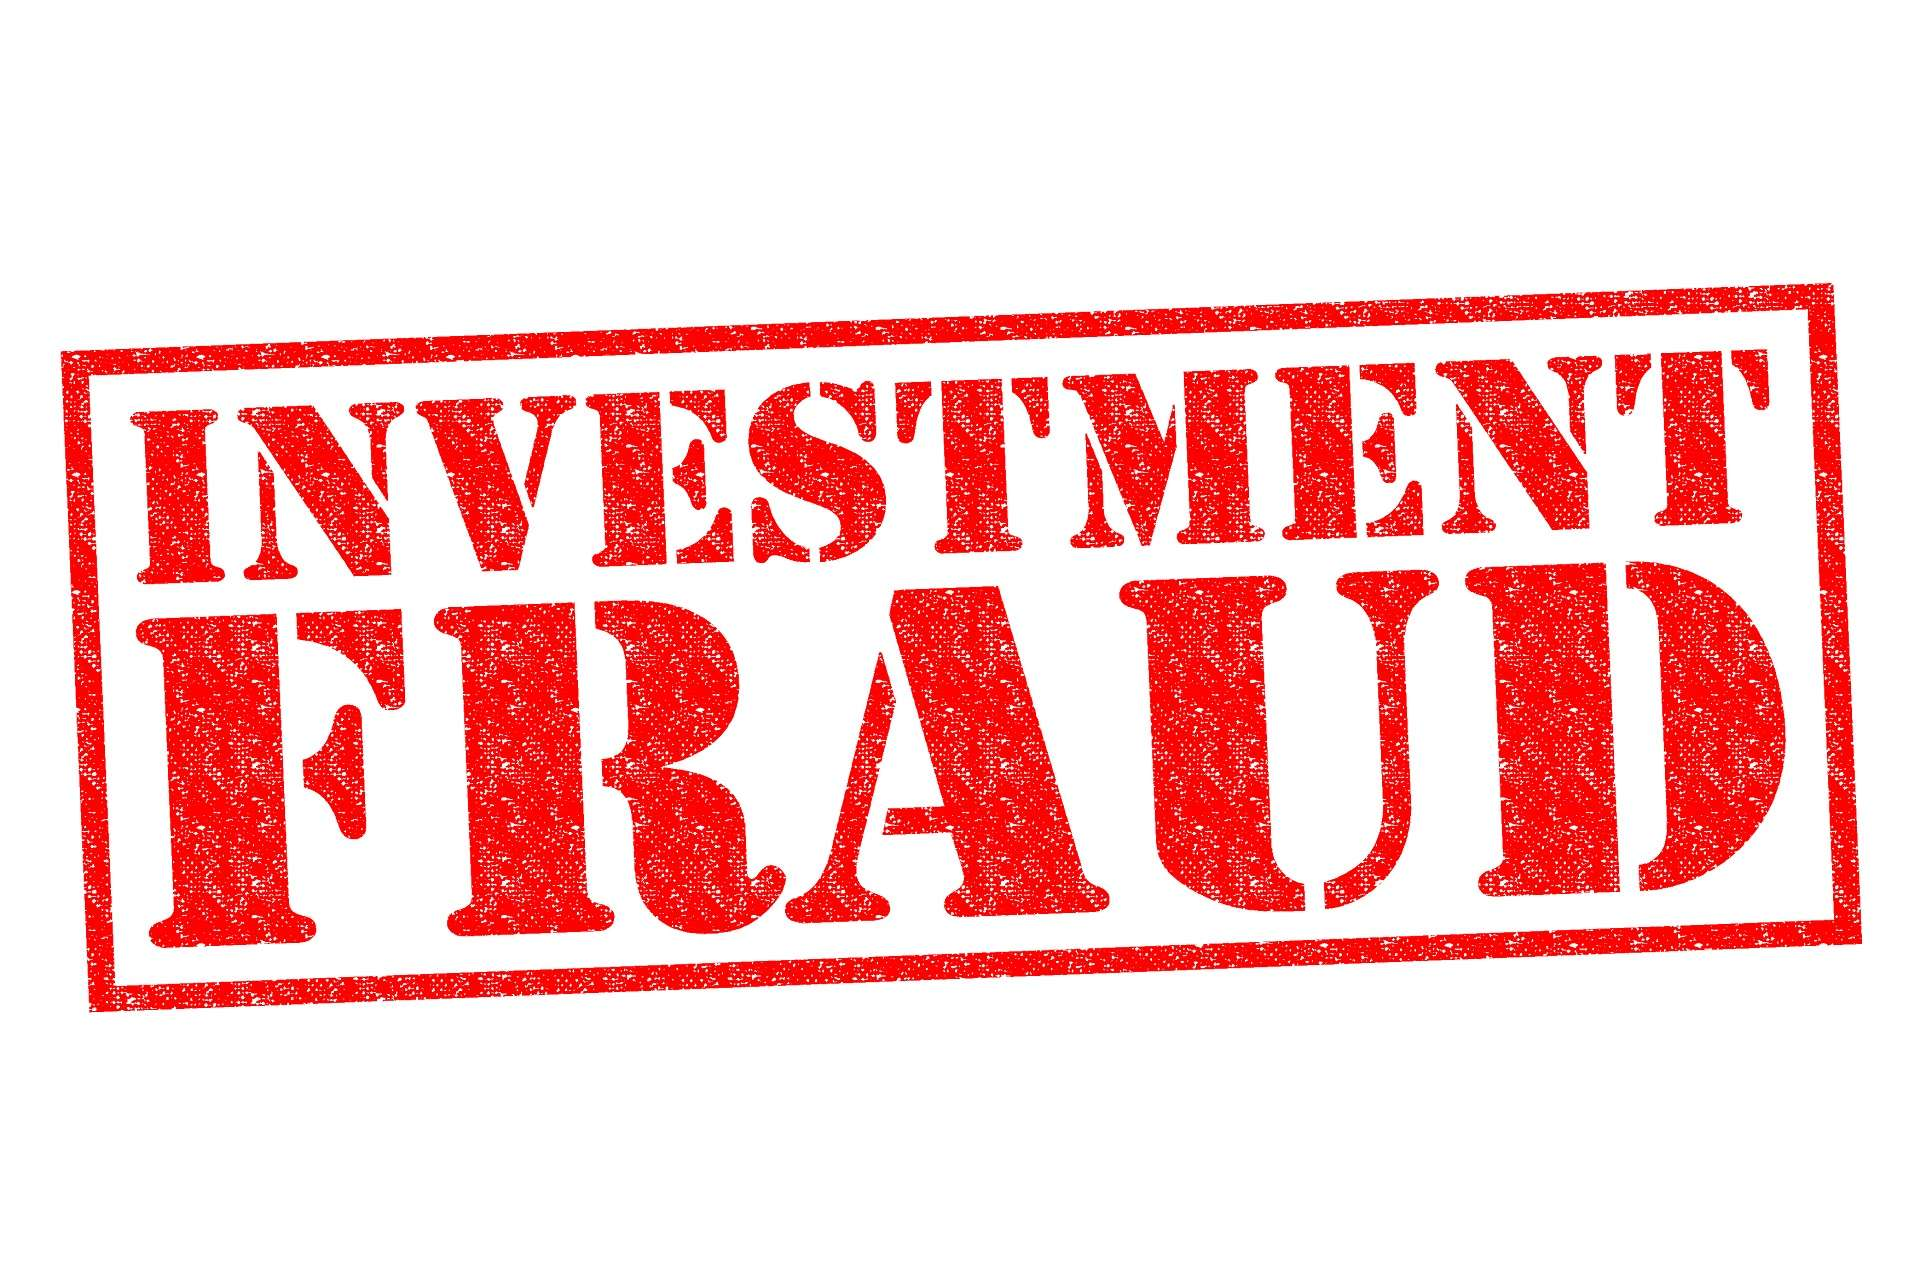 investment fraud tactic and red flags